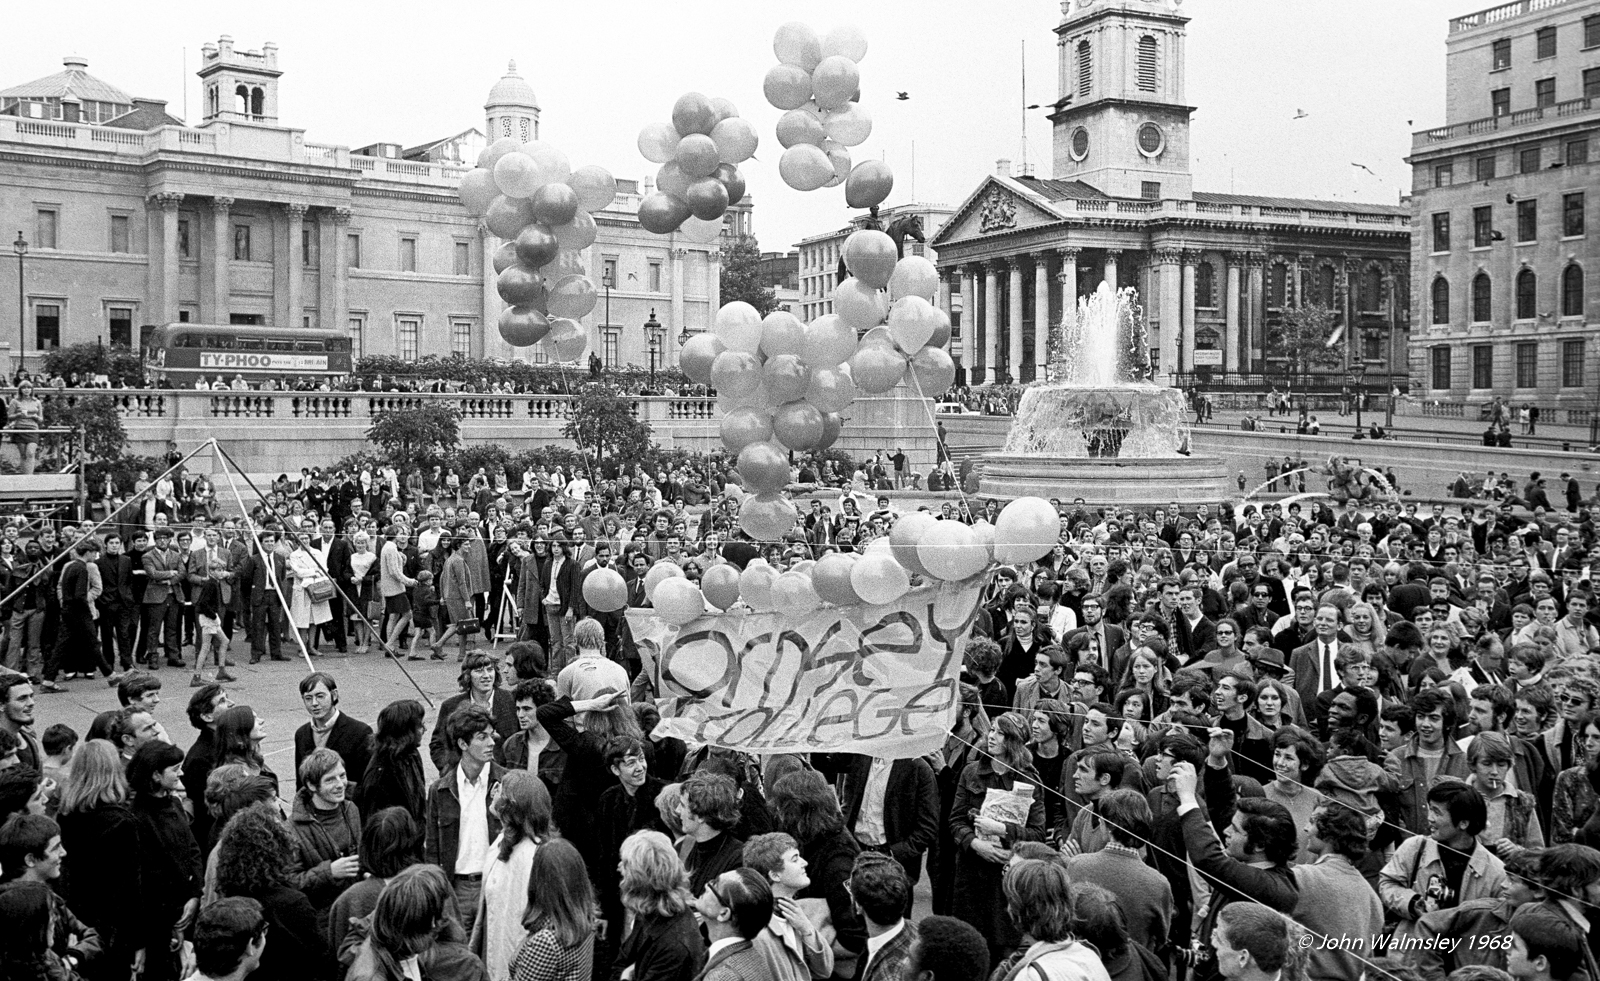 After the sit-in at Guildford School of Art, a demonstration of students from Guildford & Hornsey Art Schools and London nurses took place in Trafalgar Square, October 1968